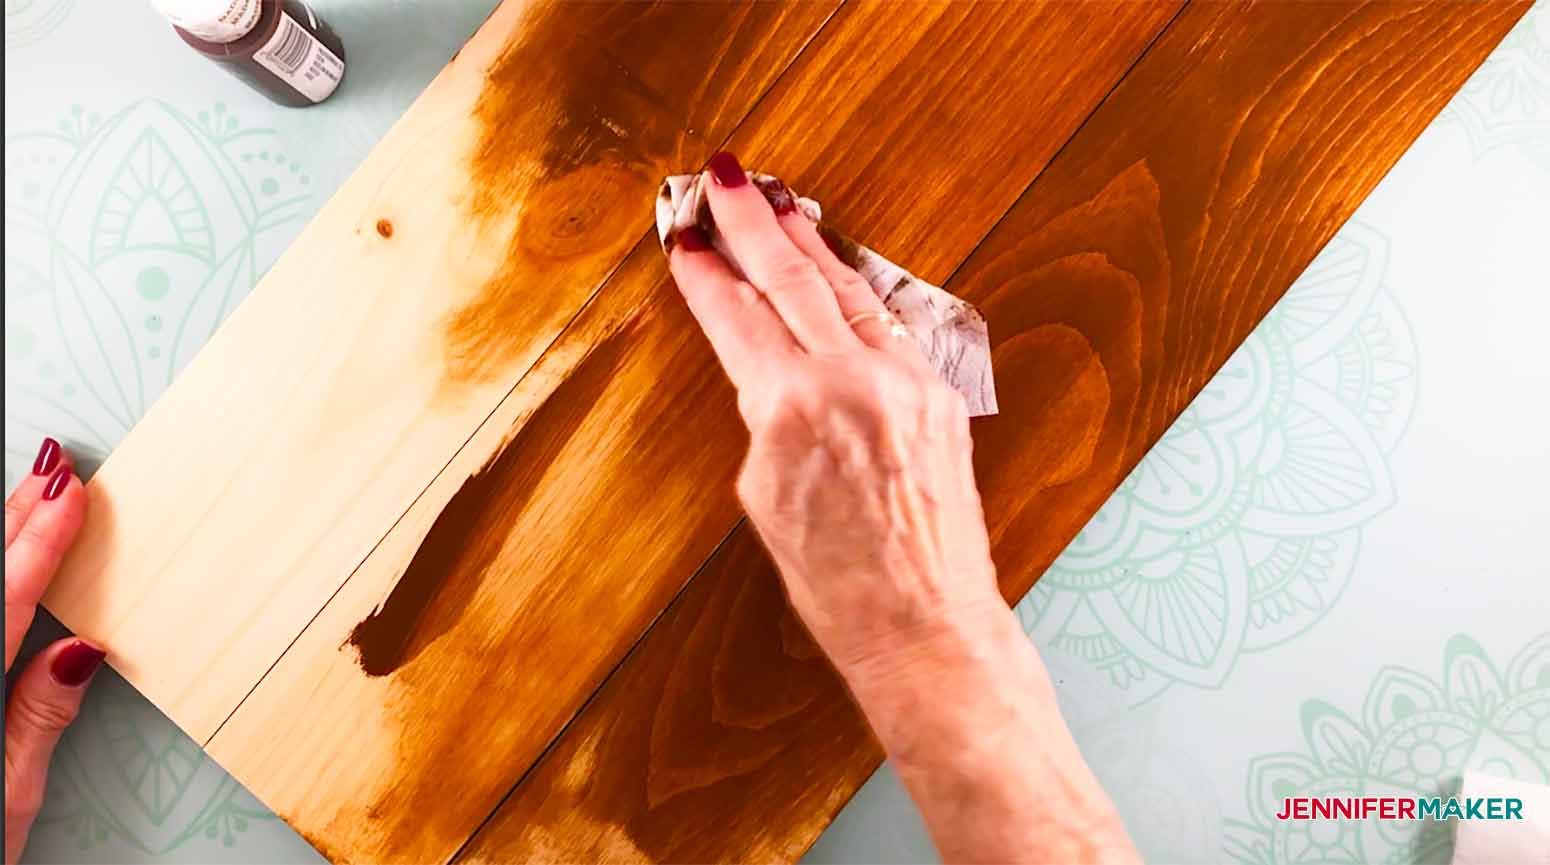 Home-Board-Jennifermaker-applying-paint-with-baby-wipe